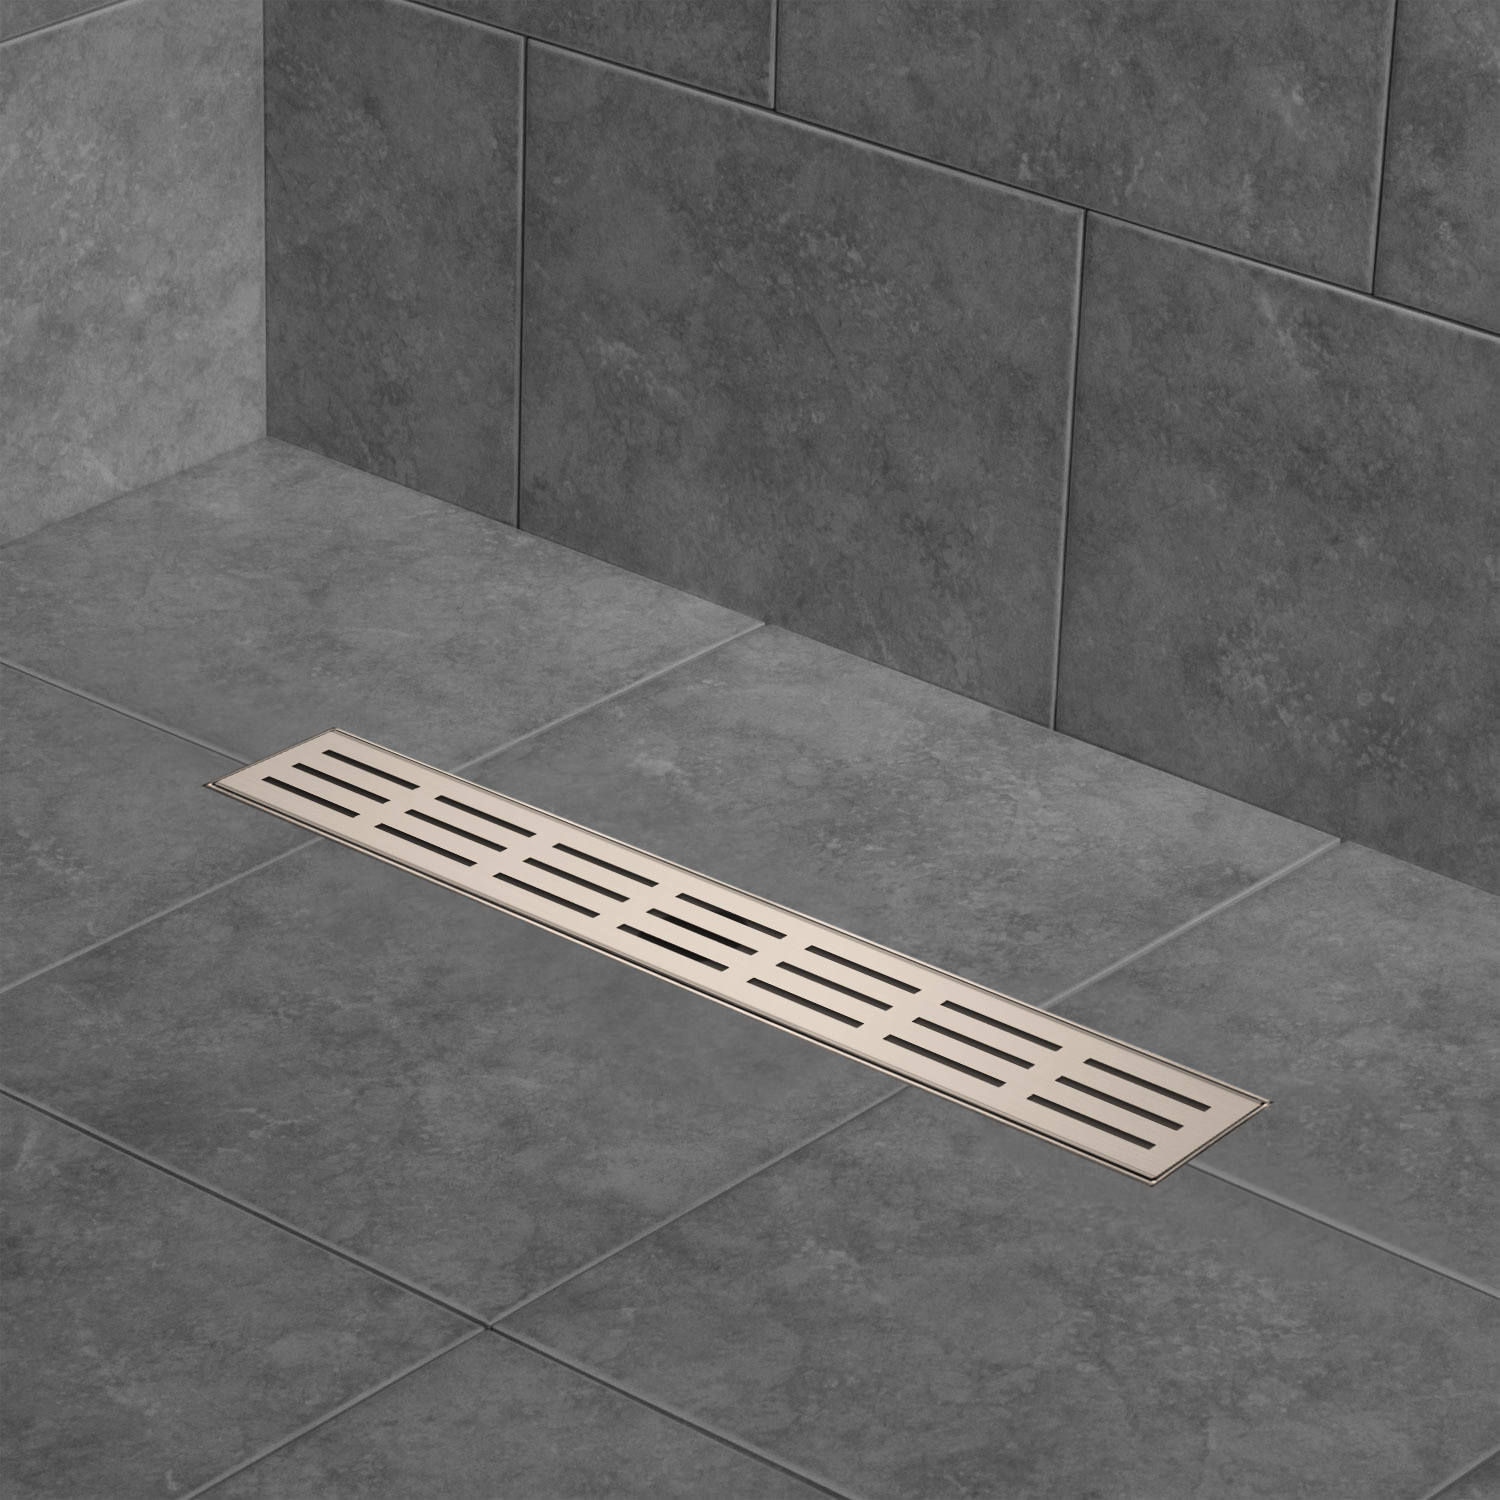 Zitta Linear Shower Drains Waterflo